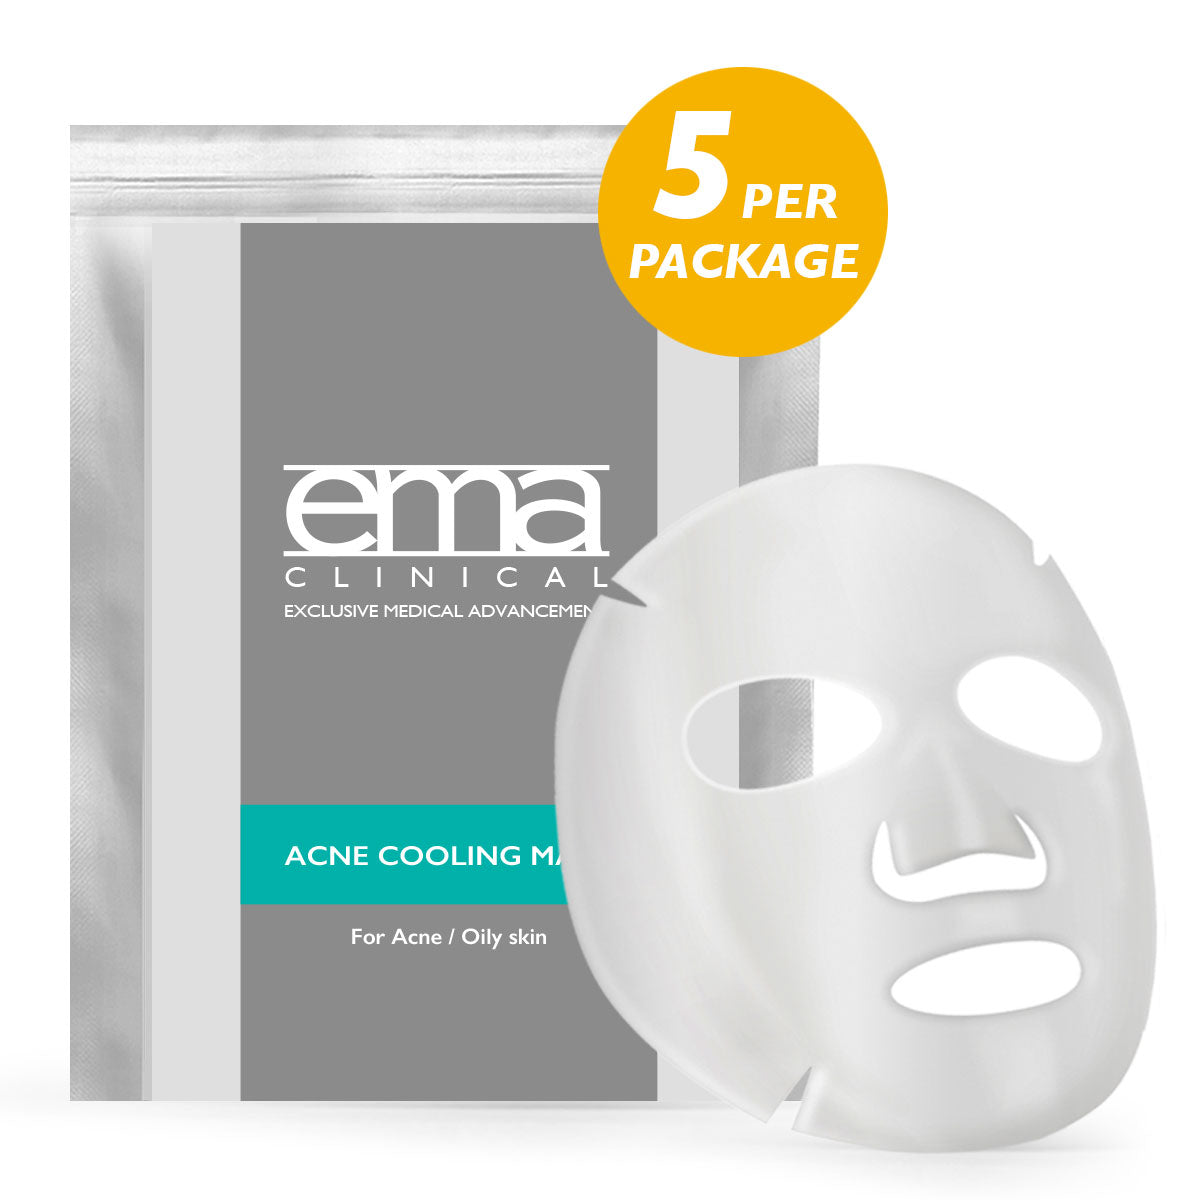 Acne Cooling/Healing Mask 5/PKG